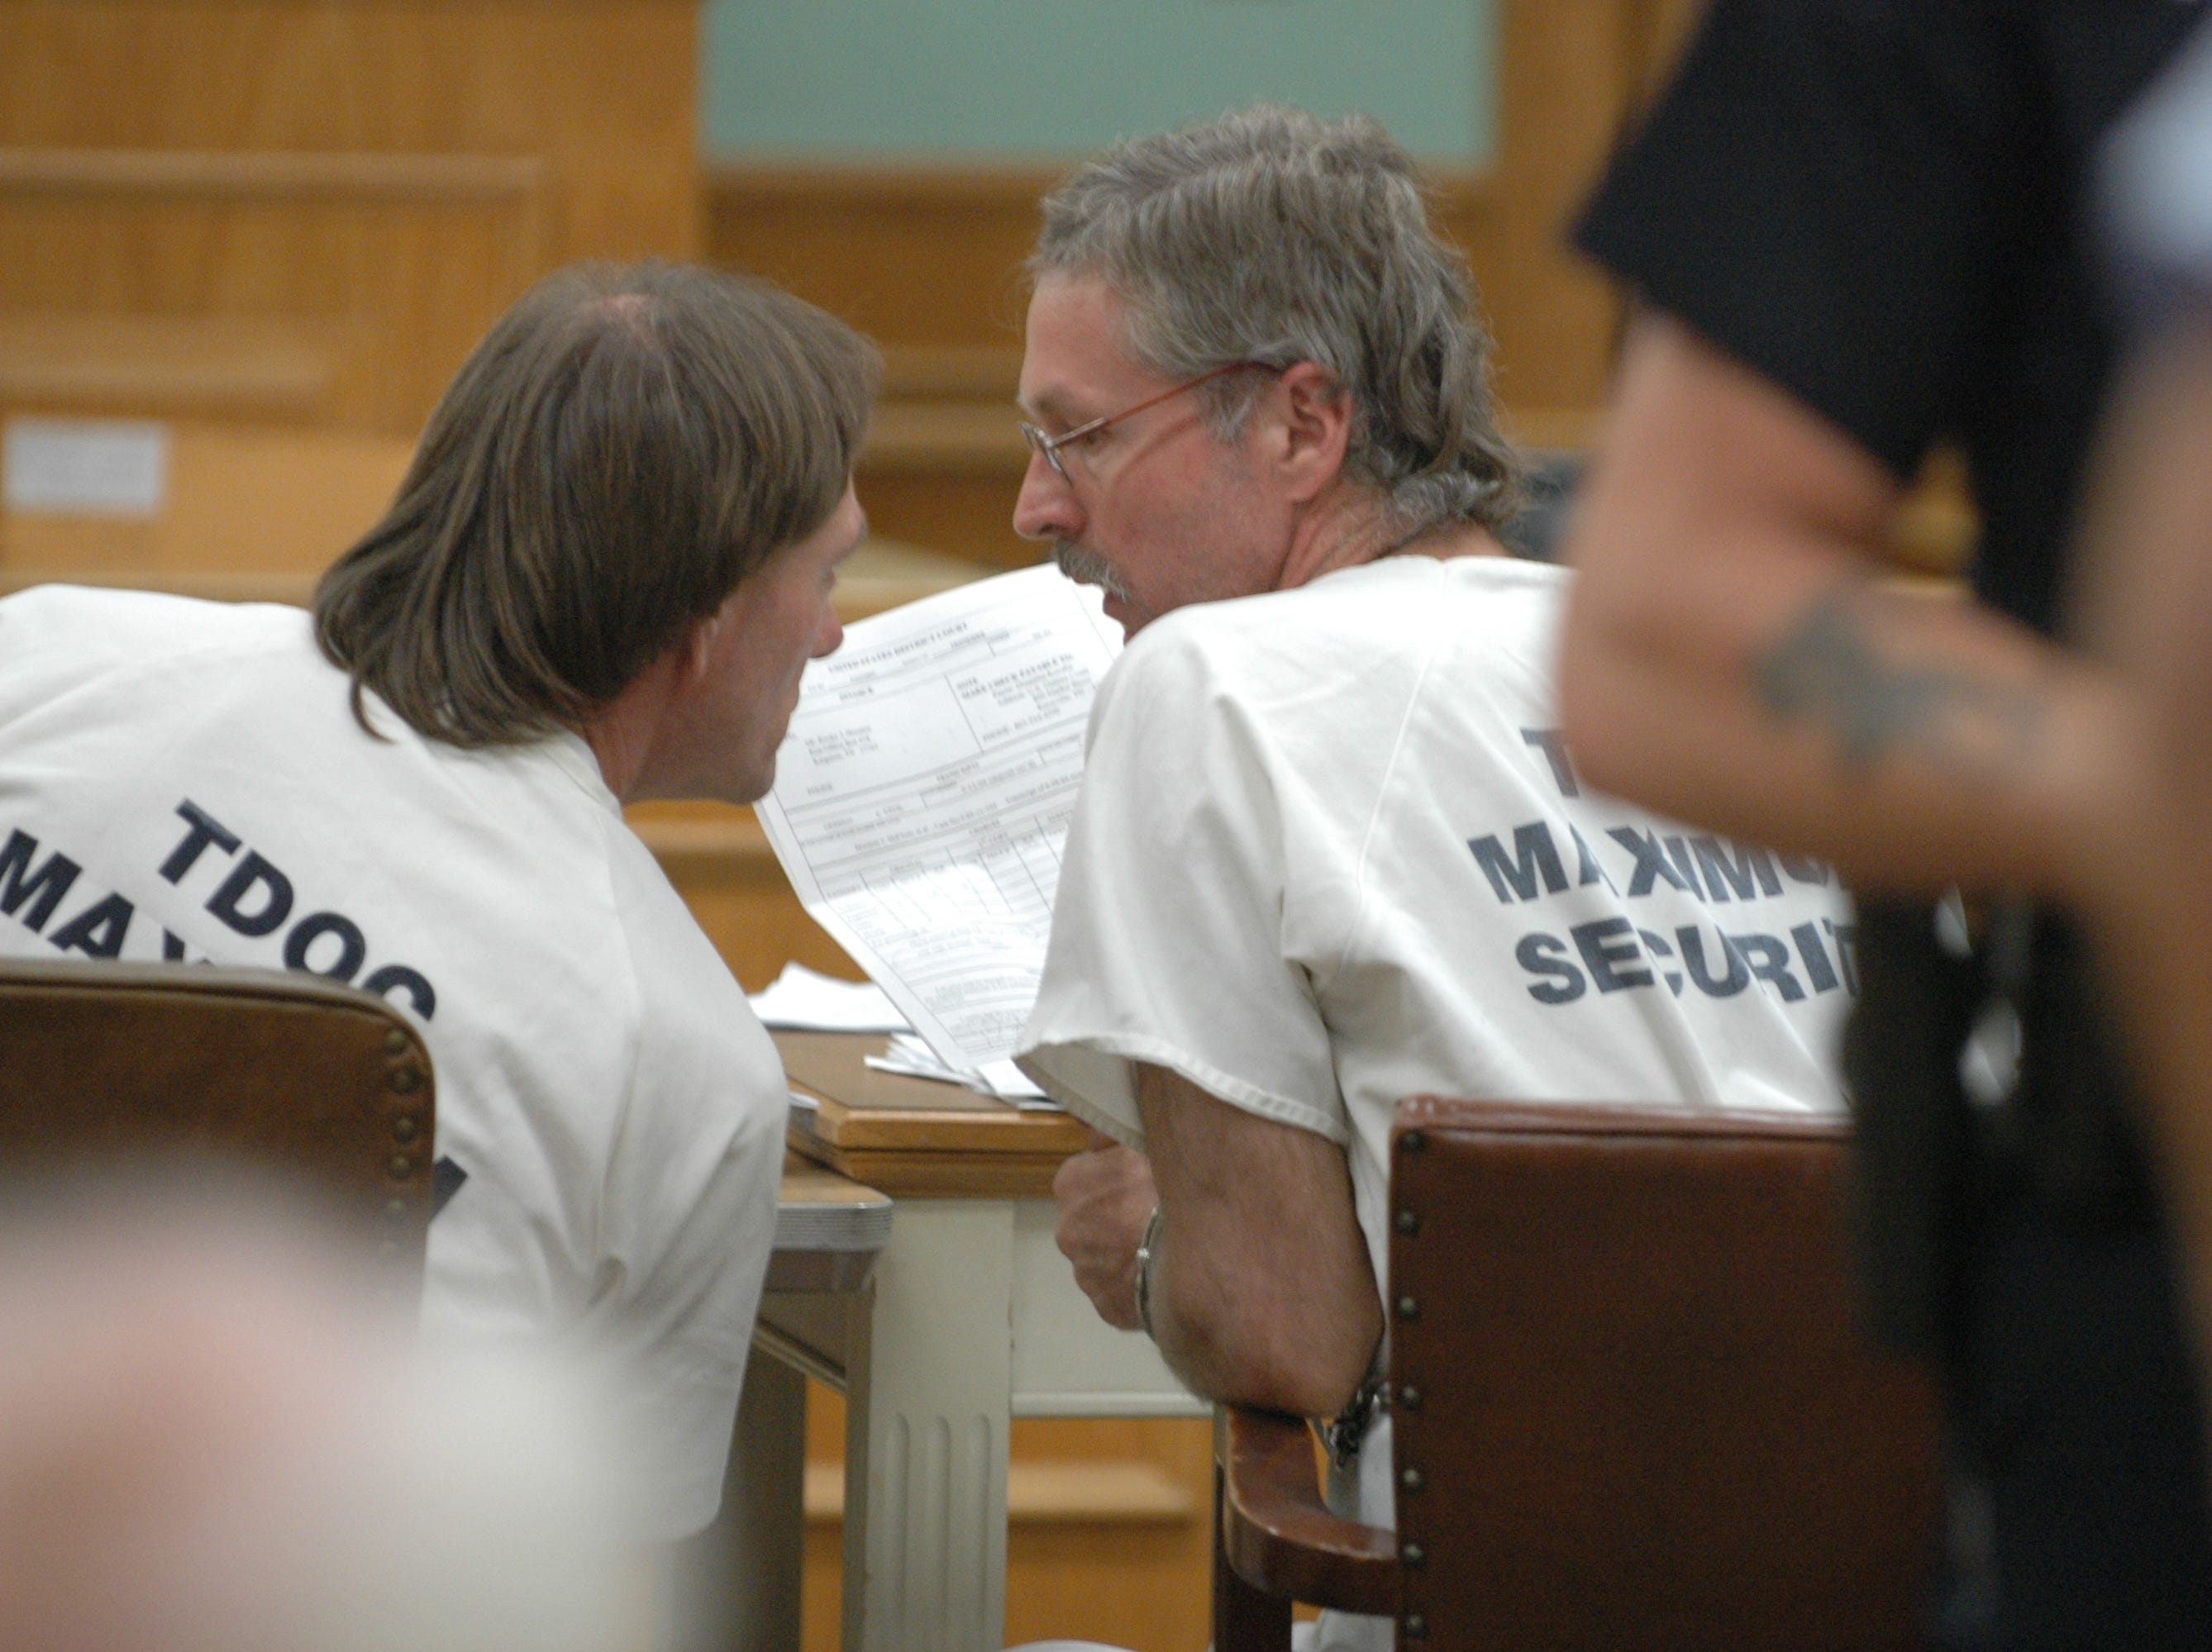 Clifford Leon Houston, left, and Rocky Joe Houston, right, speak during a hearing at the Roane County Courthouse where they stand accused of the fatal ambush of a sheriff's deputy and his ride-along friend in May.  The courthouse was locked down and security was significant during the hearing.